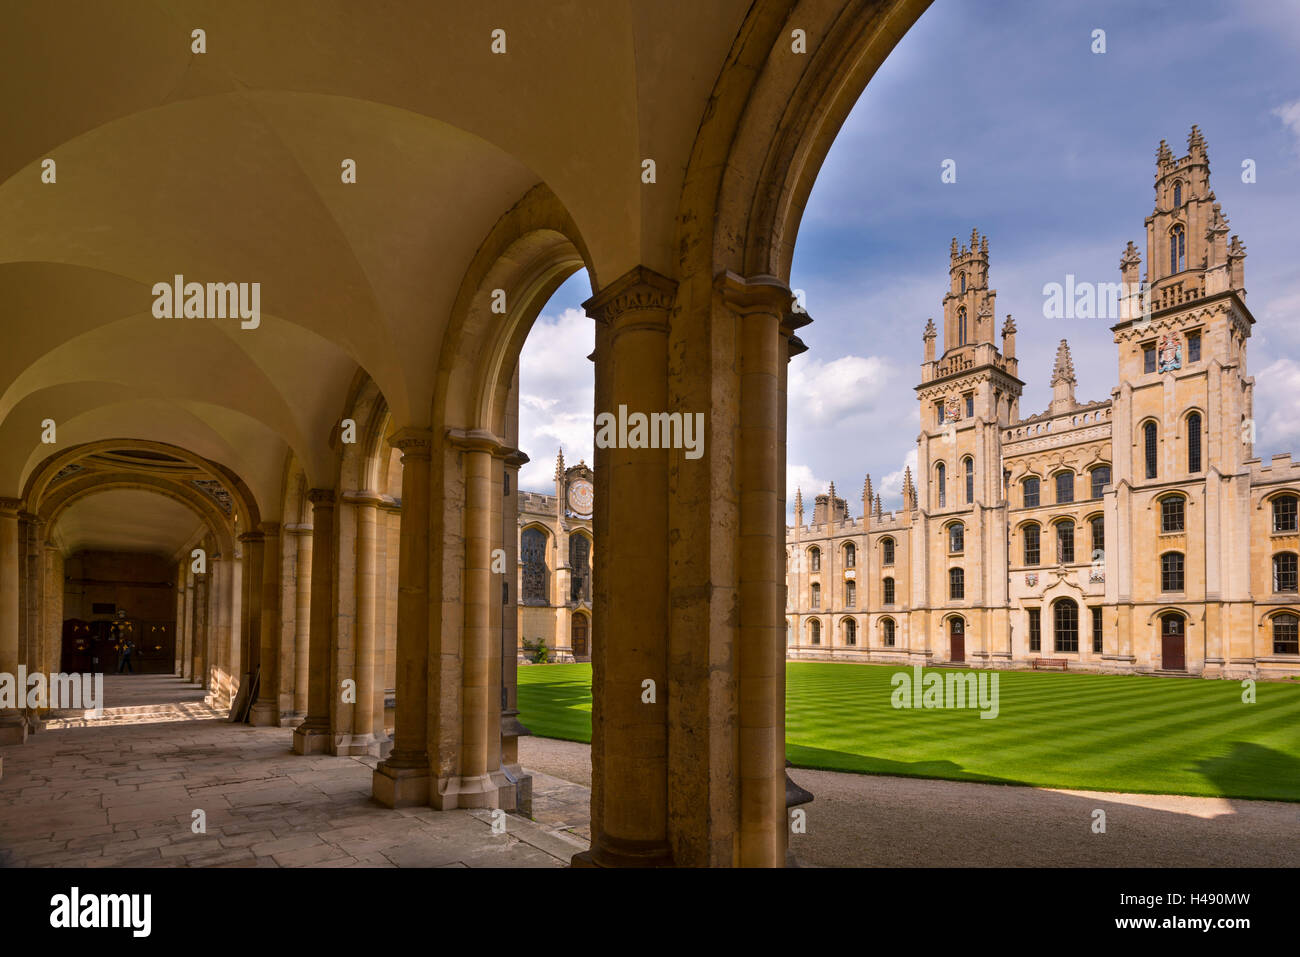 Historic All Souls College in Oxford, Oxfordshire, England. - Stock Image